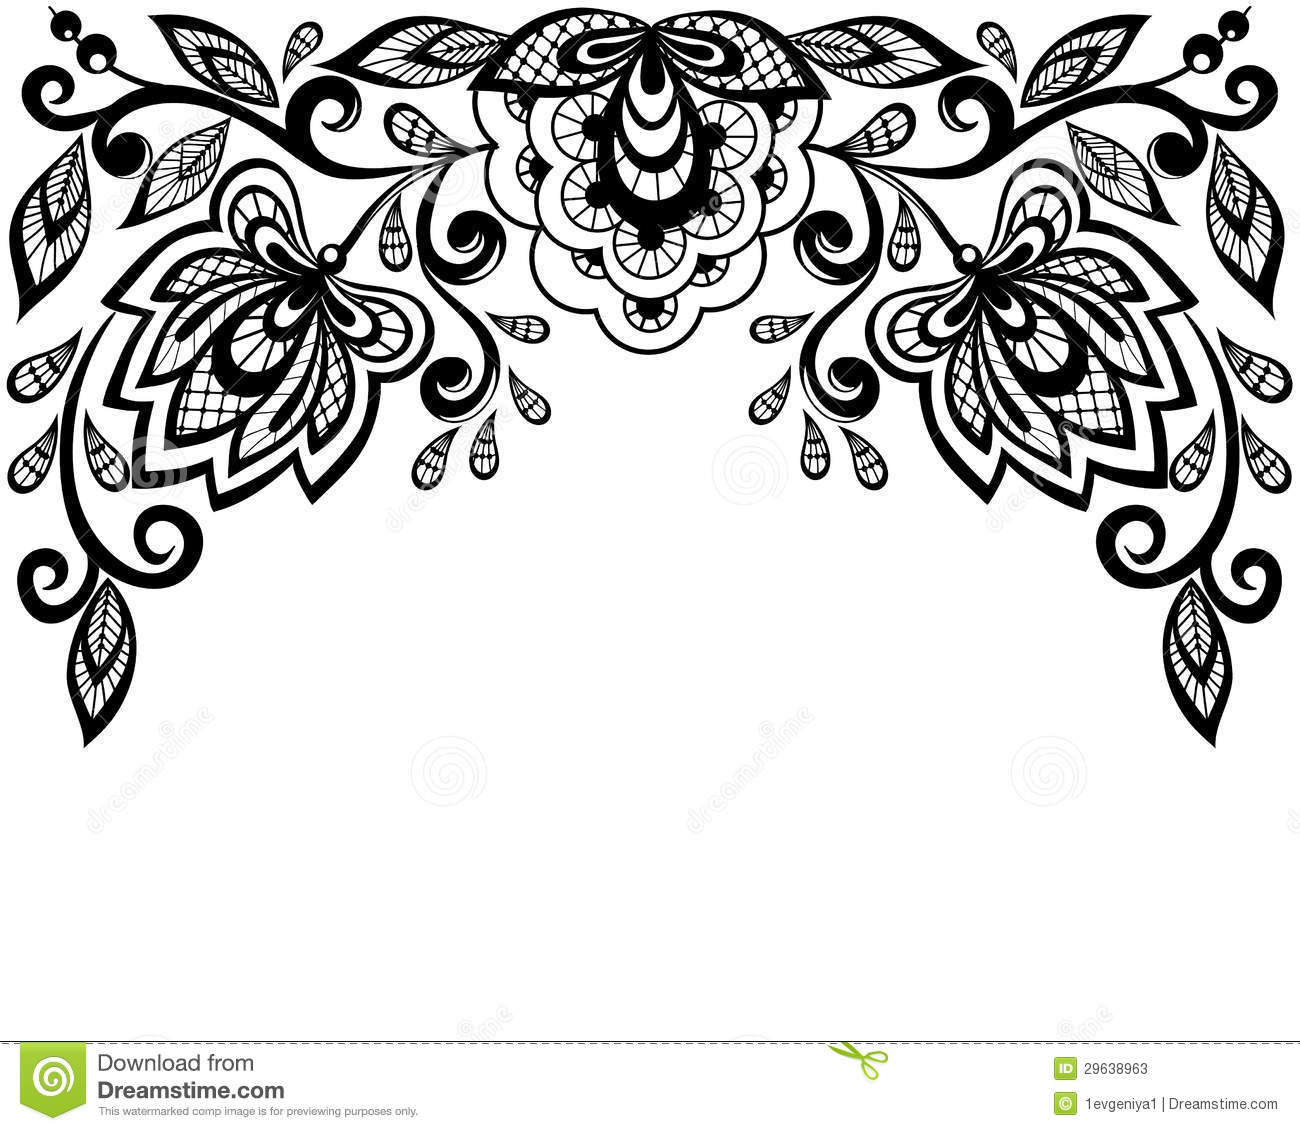 Leaves Clip Art Black And White Border   Clipart Panda   Free Clipart